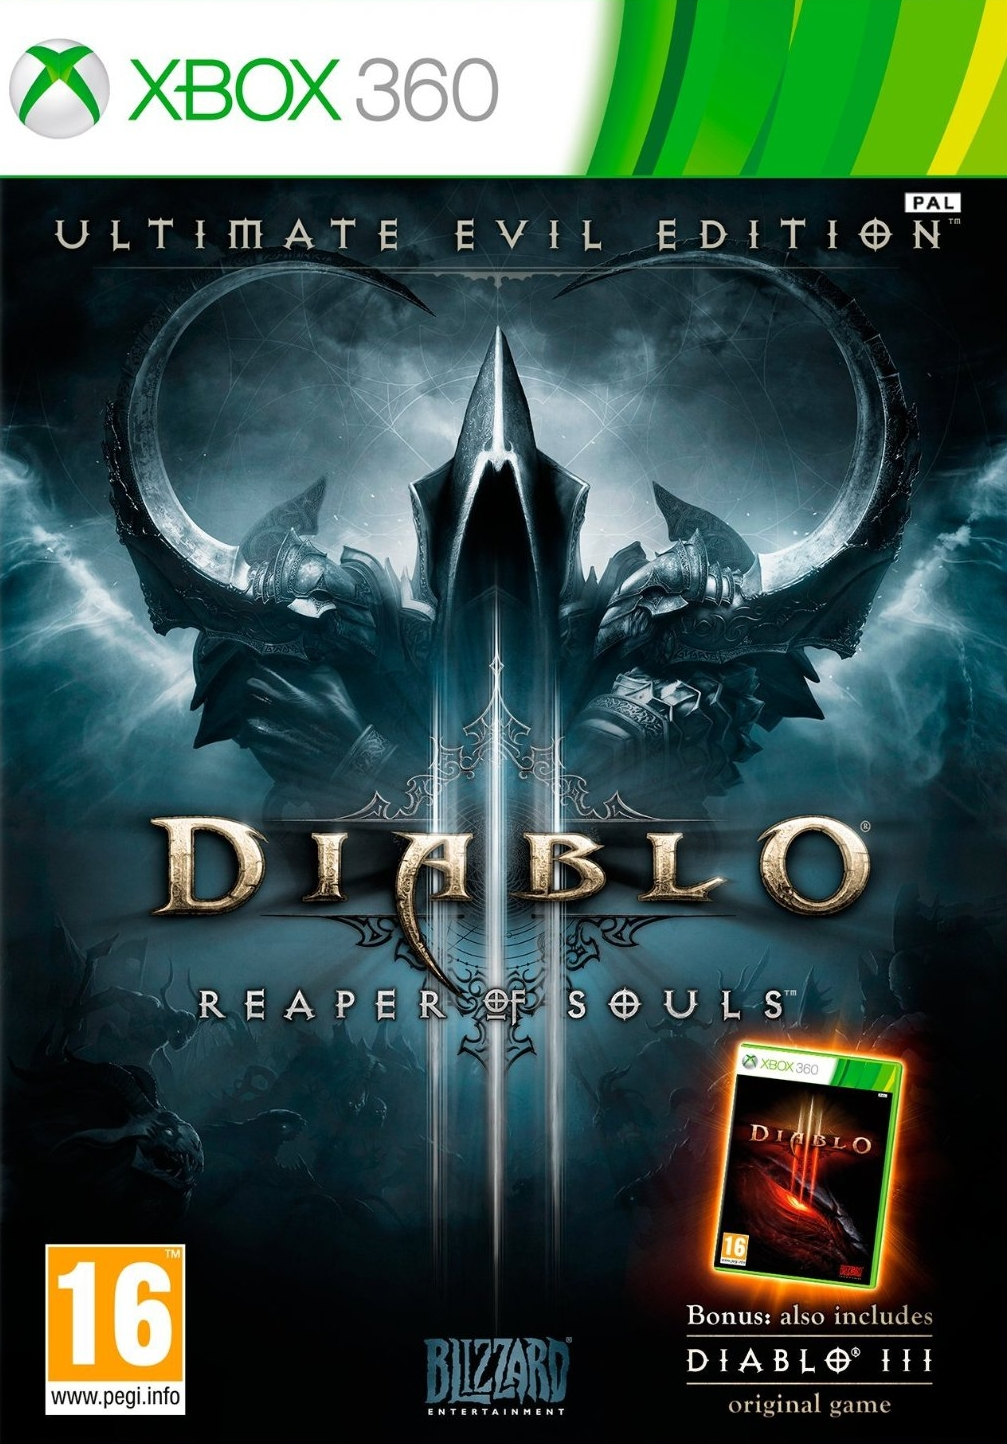 Diablo III (3): Reaper of Souls. Ultimate Evil Edition (���)